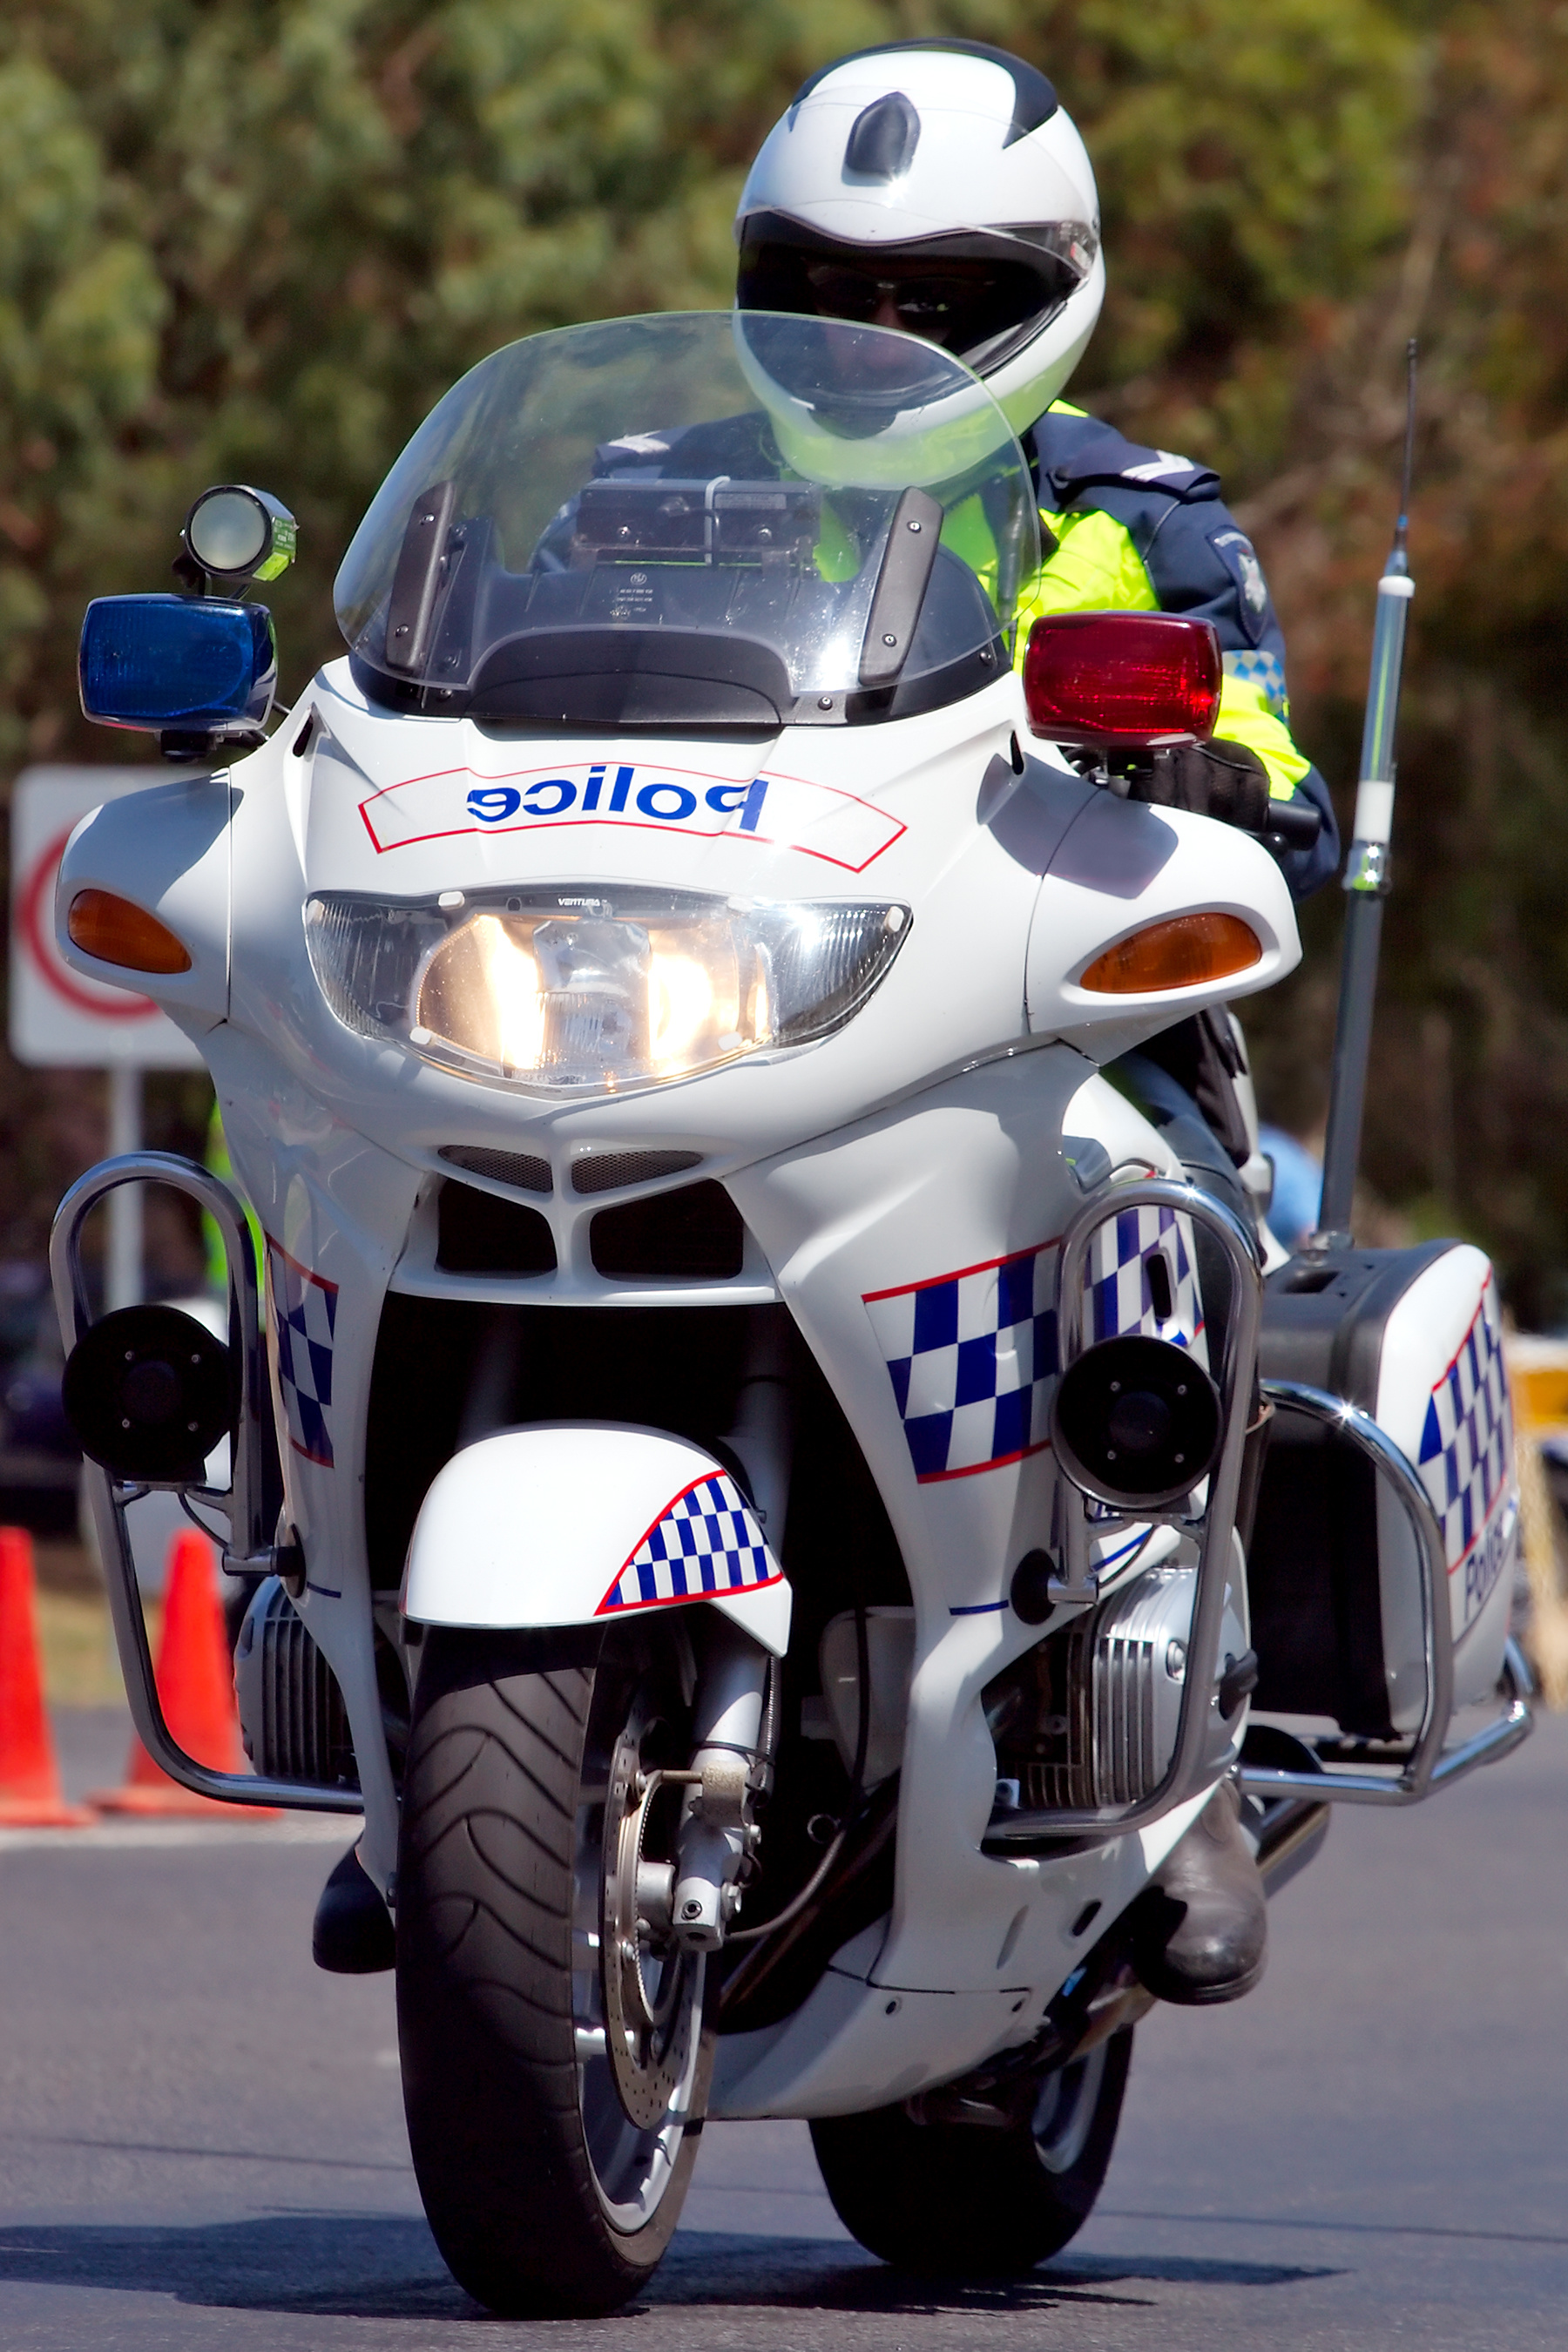 Police motorcycle with rider